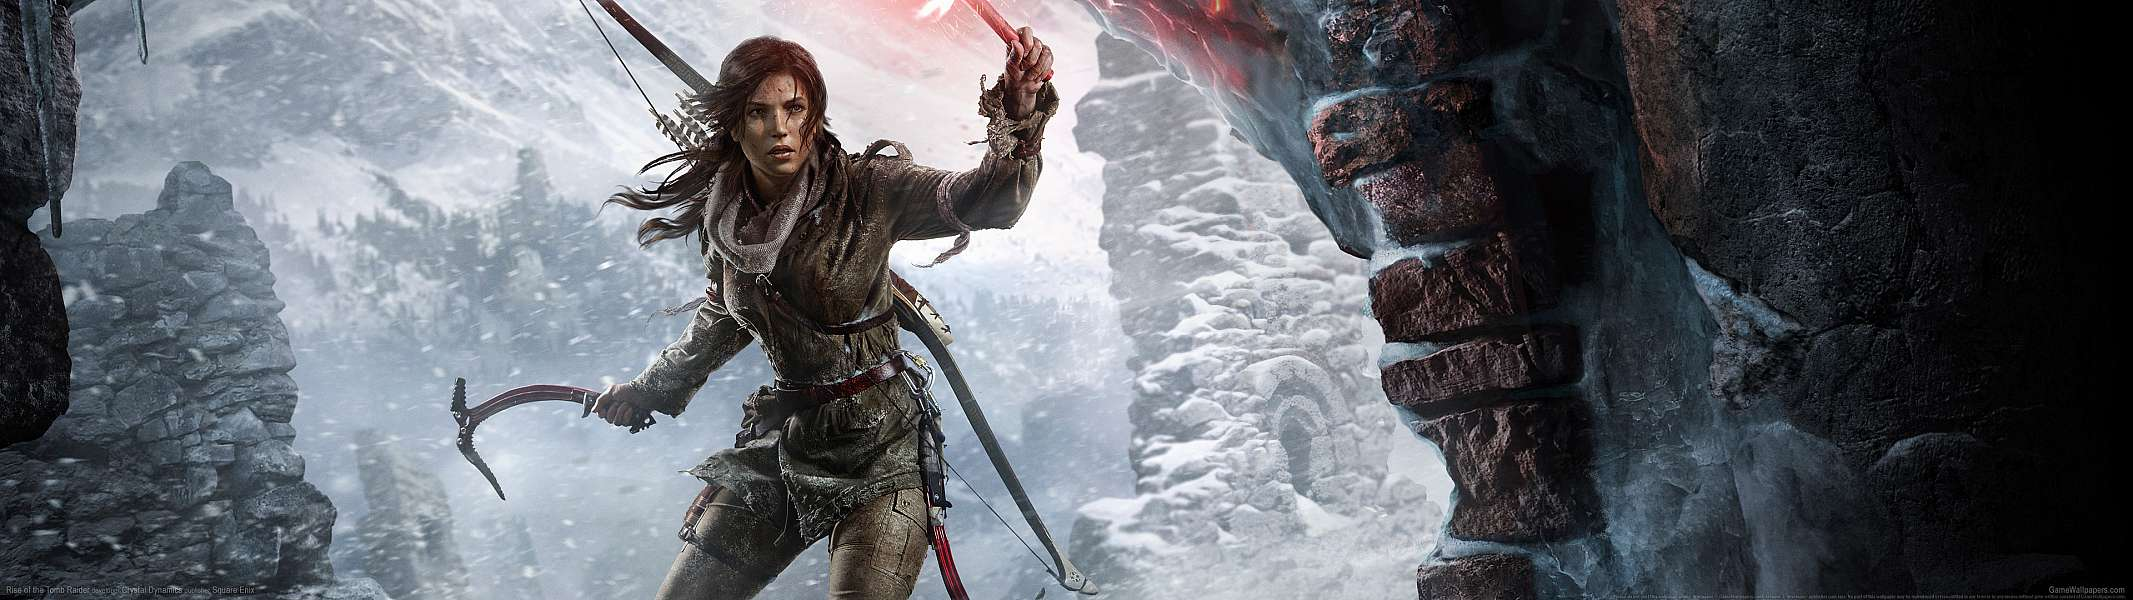 Rise of the Tomb Raider dual screen wallpaper